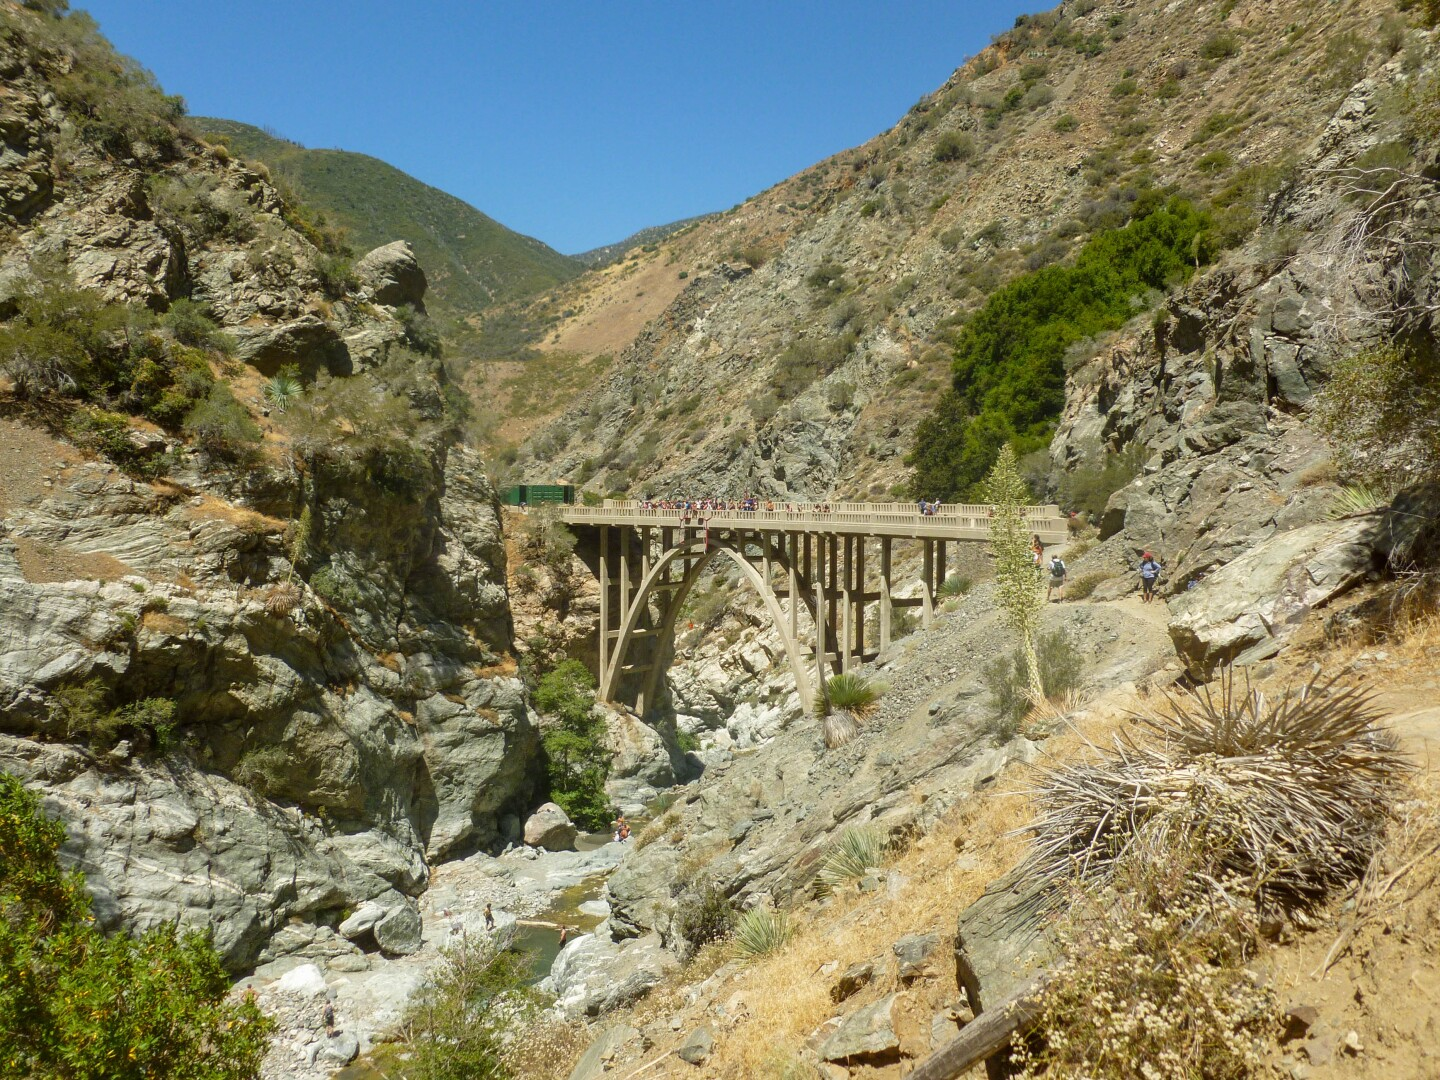 The abandoned bridge at the end of theBridge to Nowhere hike in the San Gabriels'Sheep Mountain Wilderness Area. The bridge is a jumping point for bungee jumpers while a refreshing creek is available for hikers to cool off below.